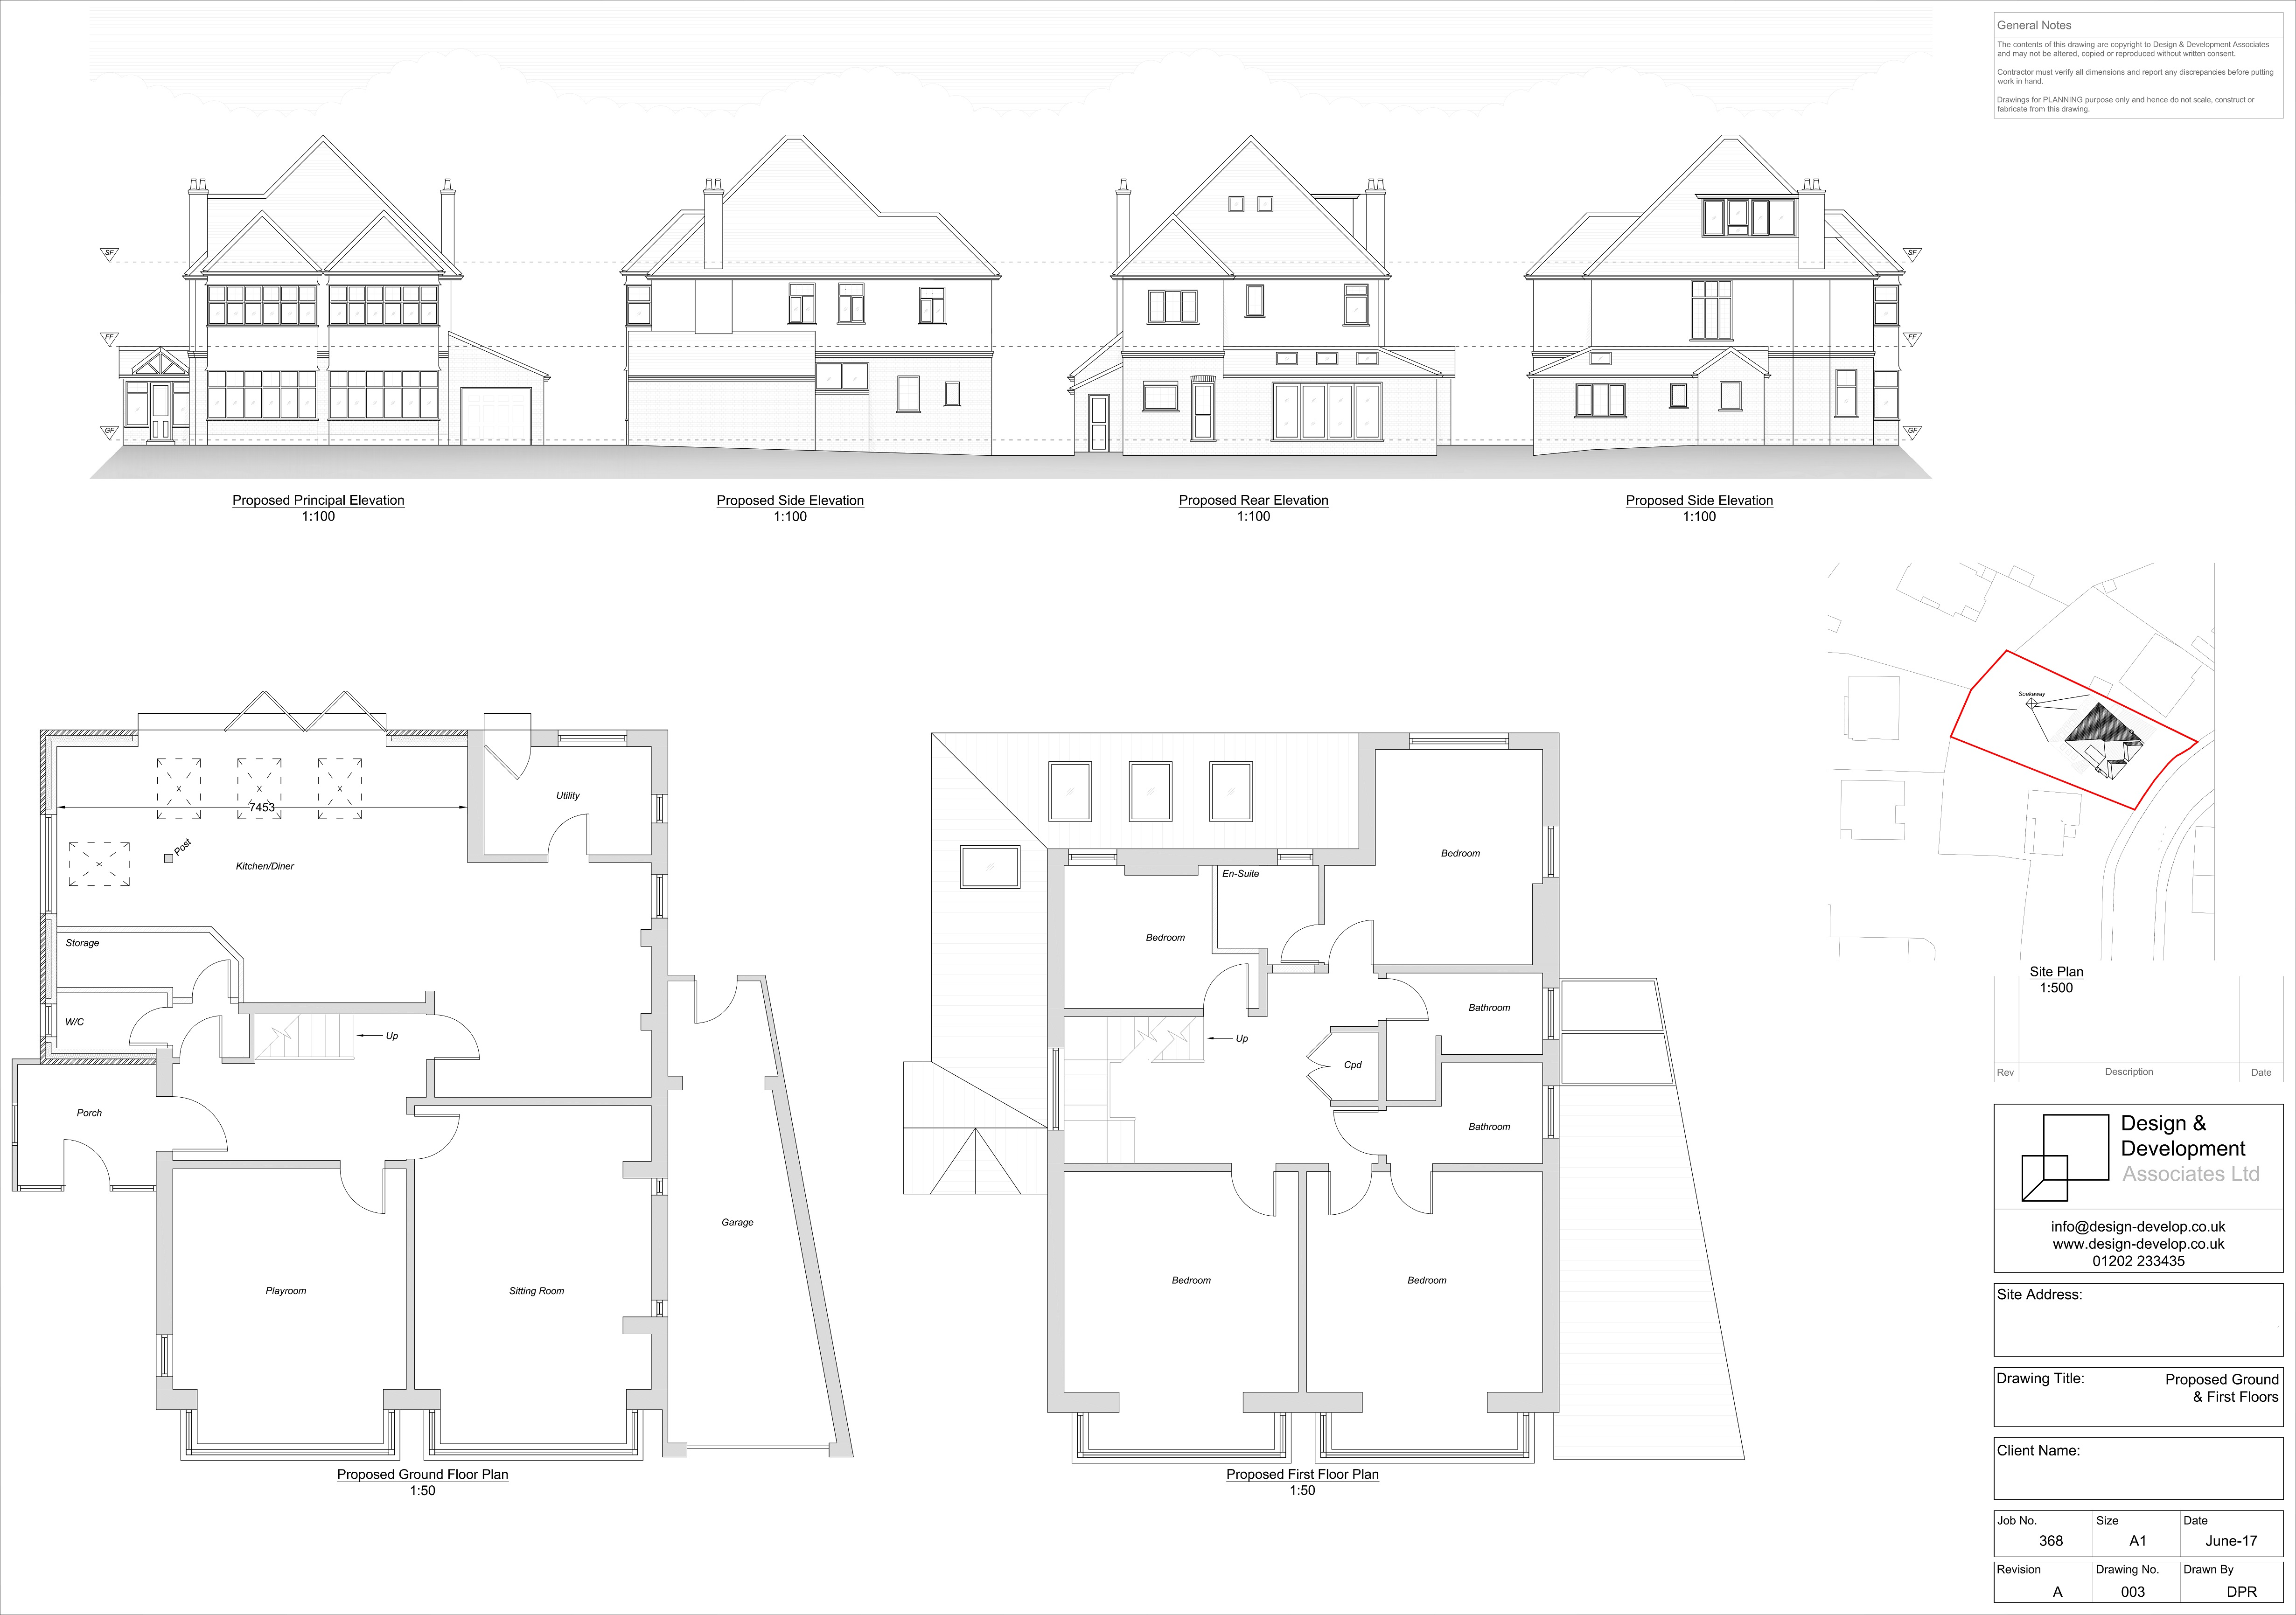 Proposed Second Floor & Roof Plan